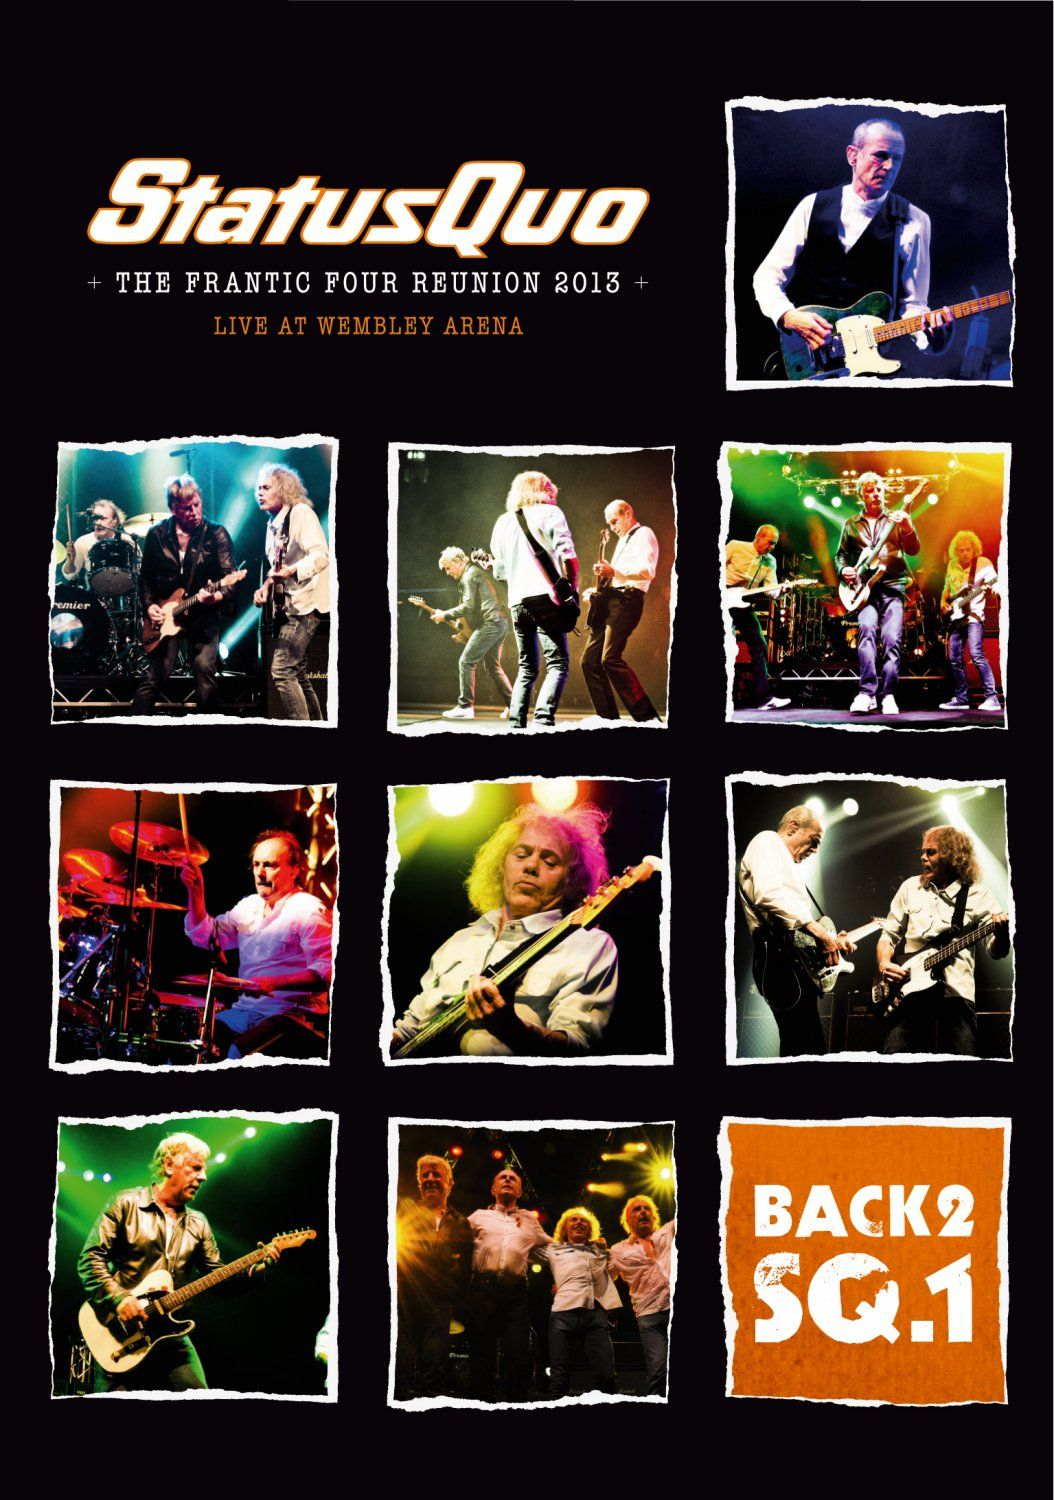 Status Quo: Back2SQ.1 - The Frantic Four Reunion 2013 Live at Hammersmith